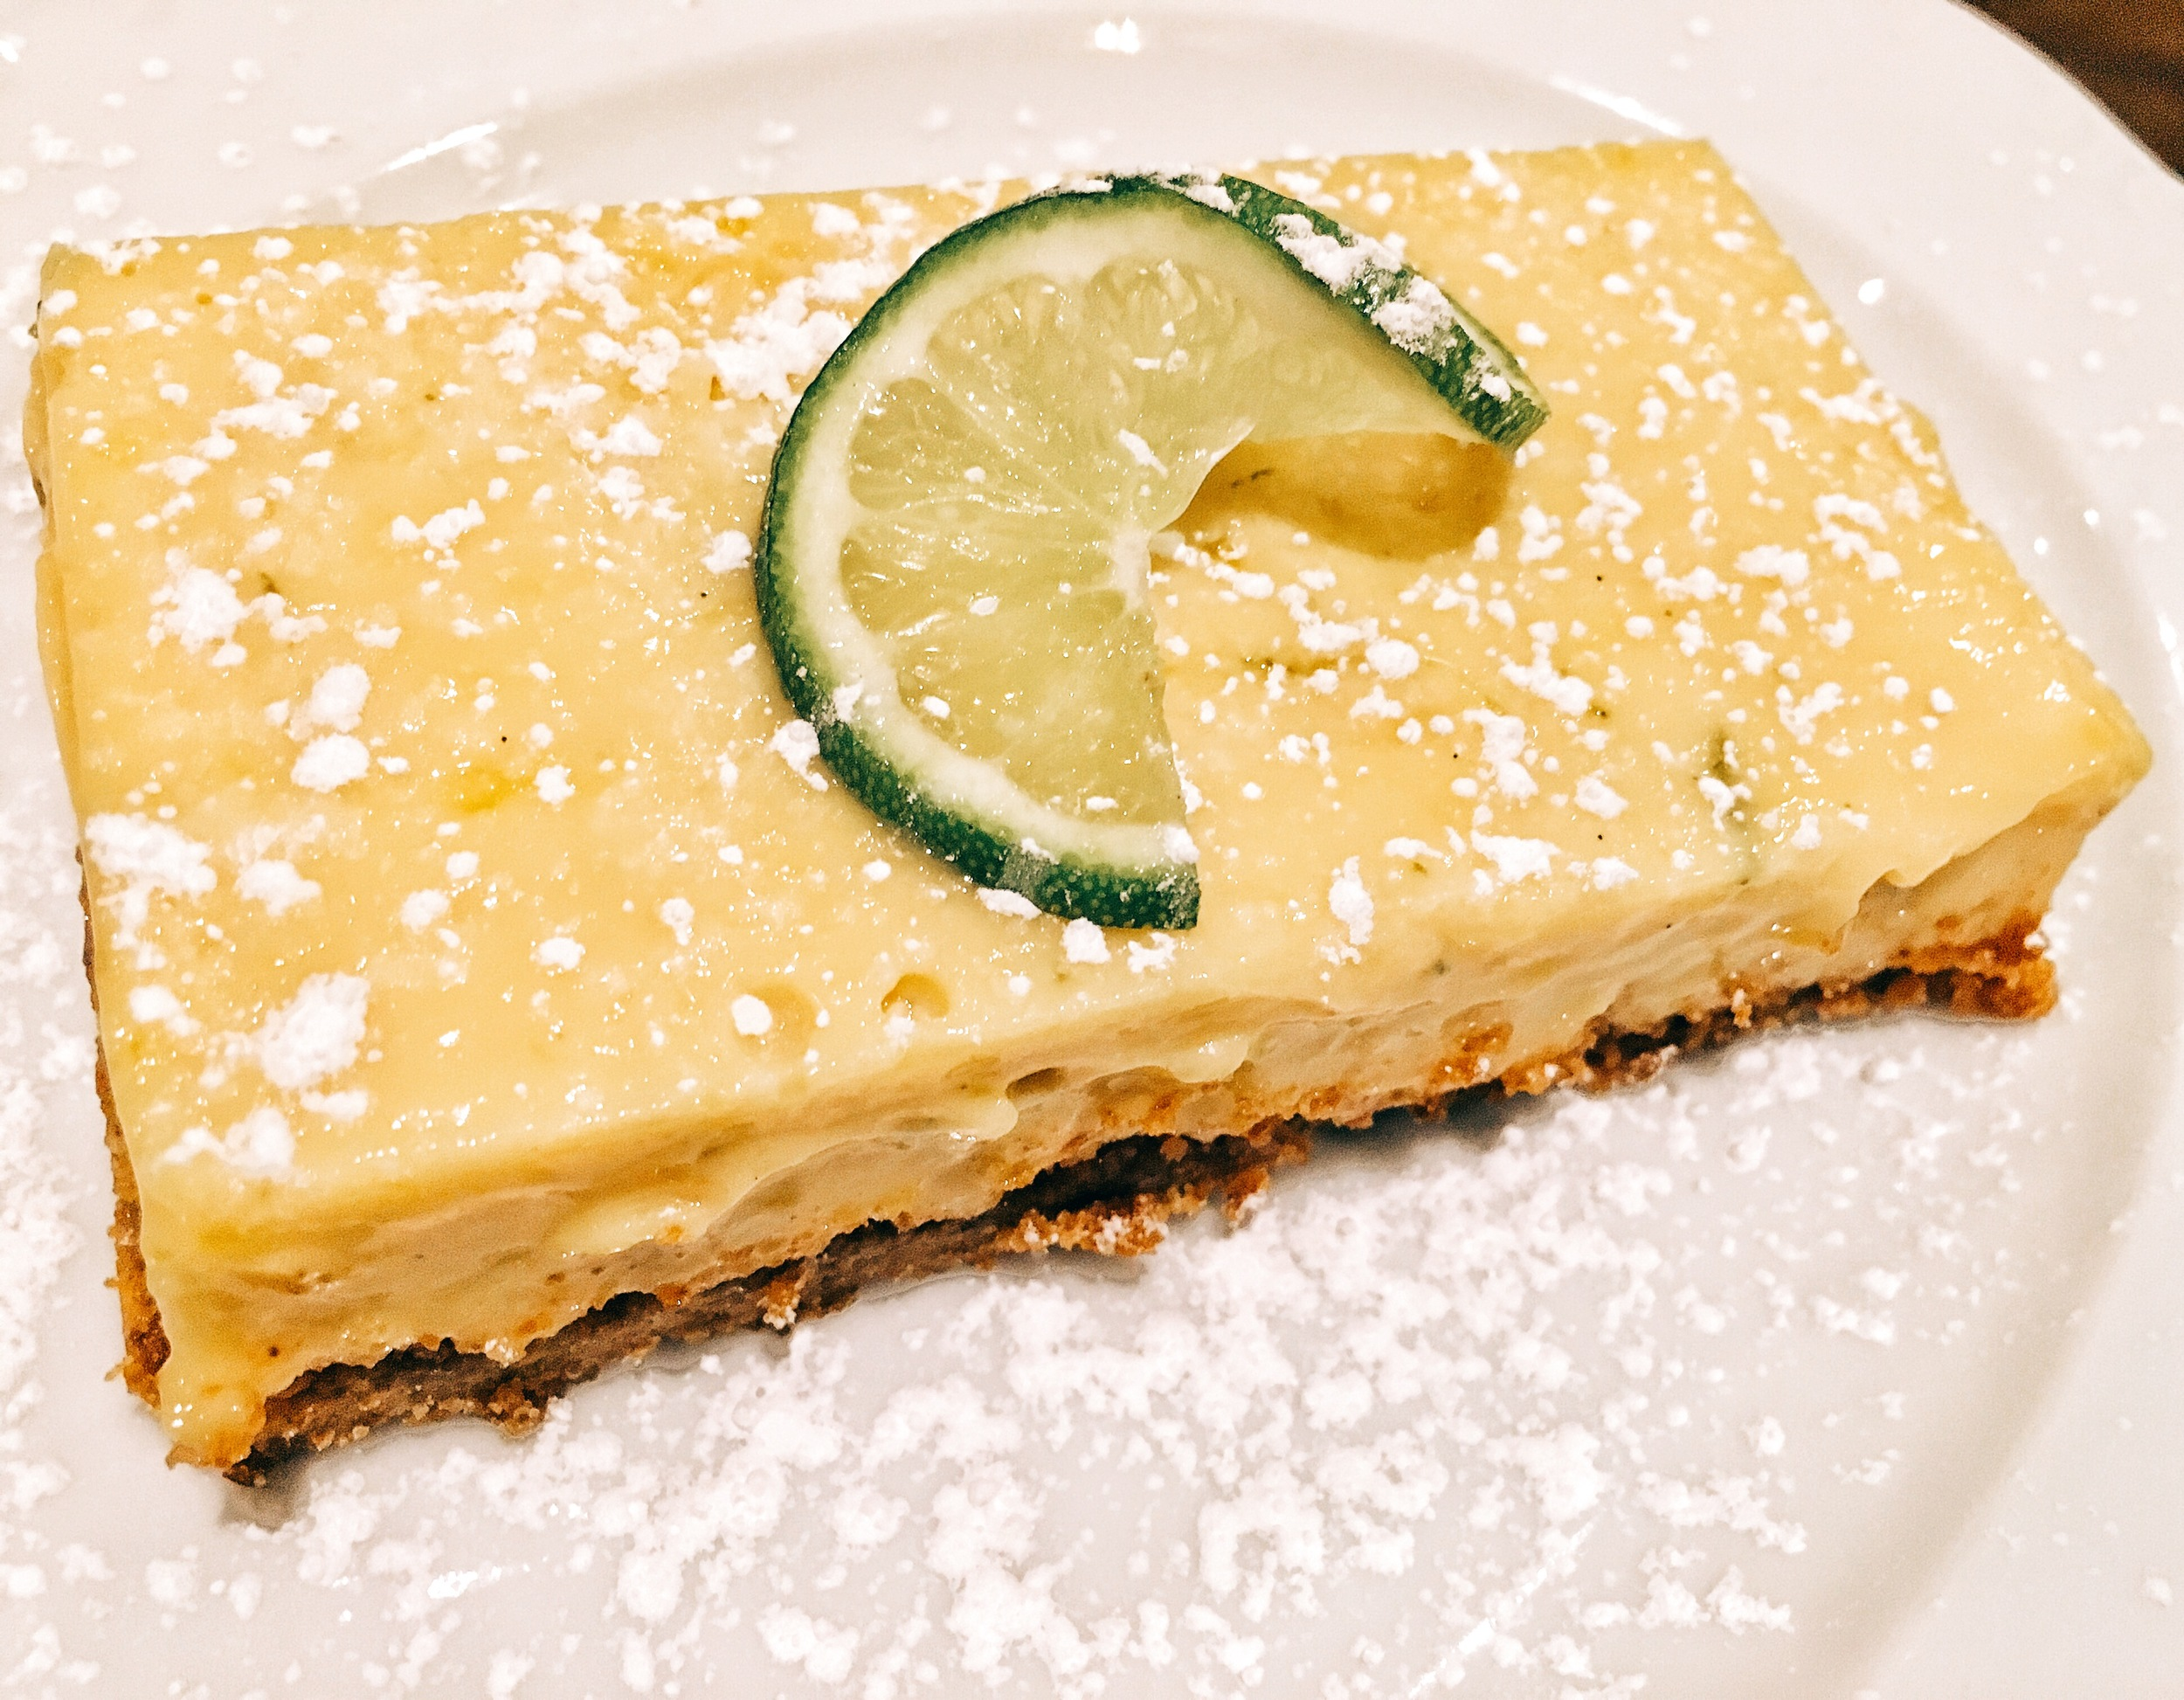 Key lime pie (just like something your grandma would make)